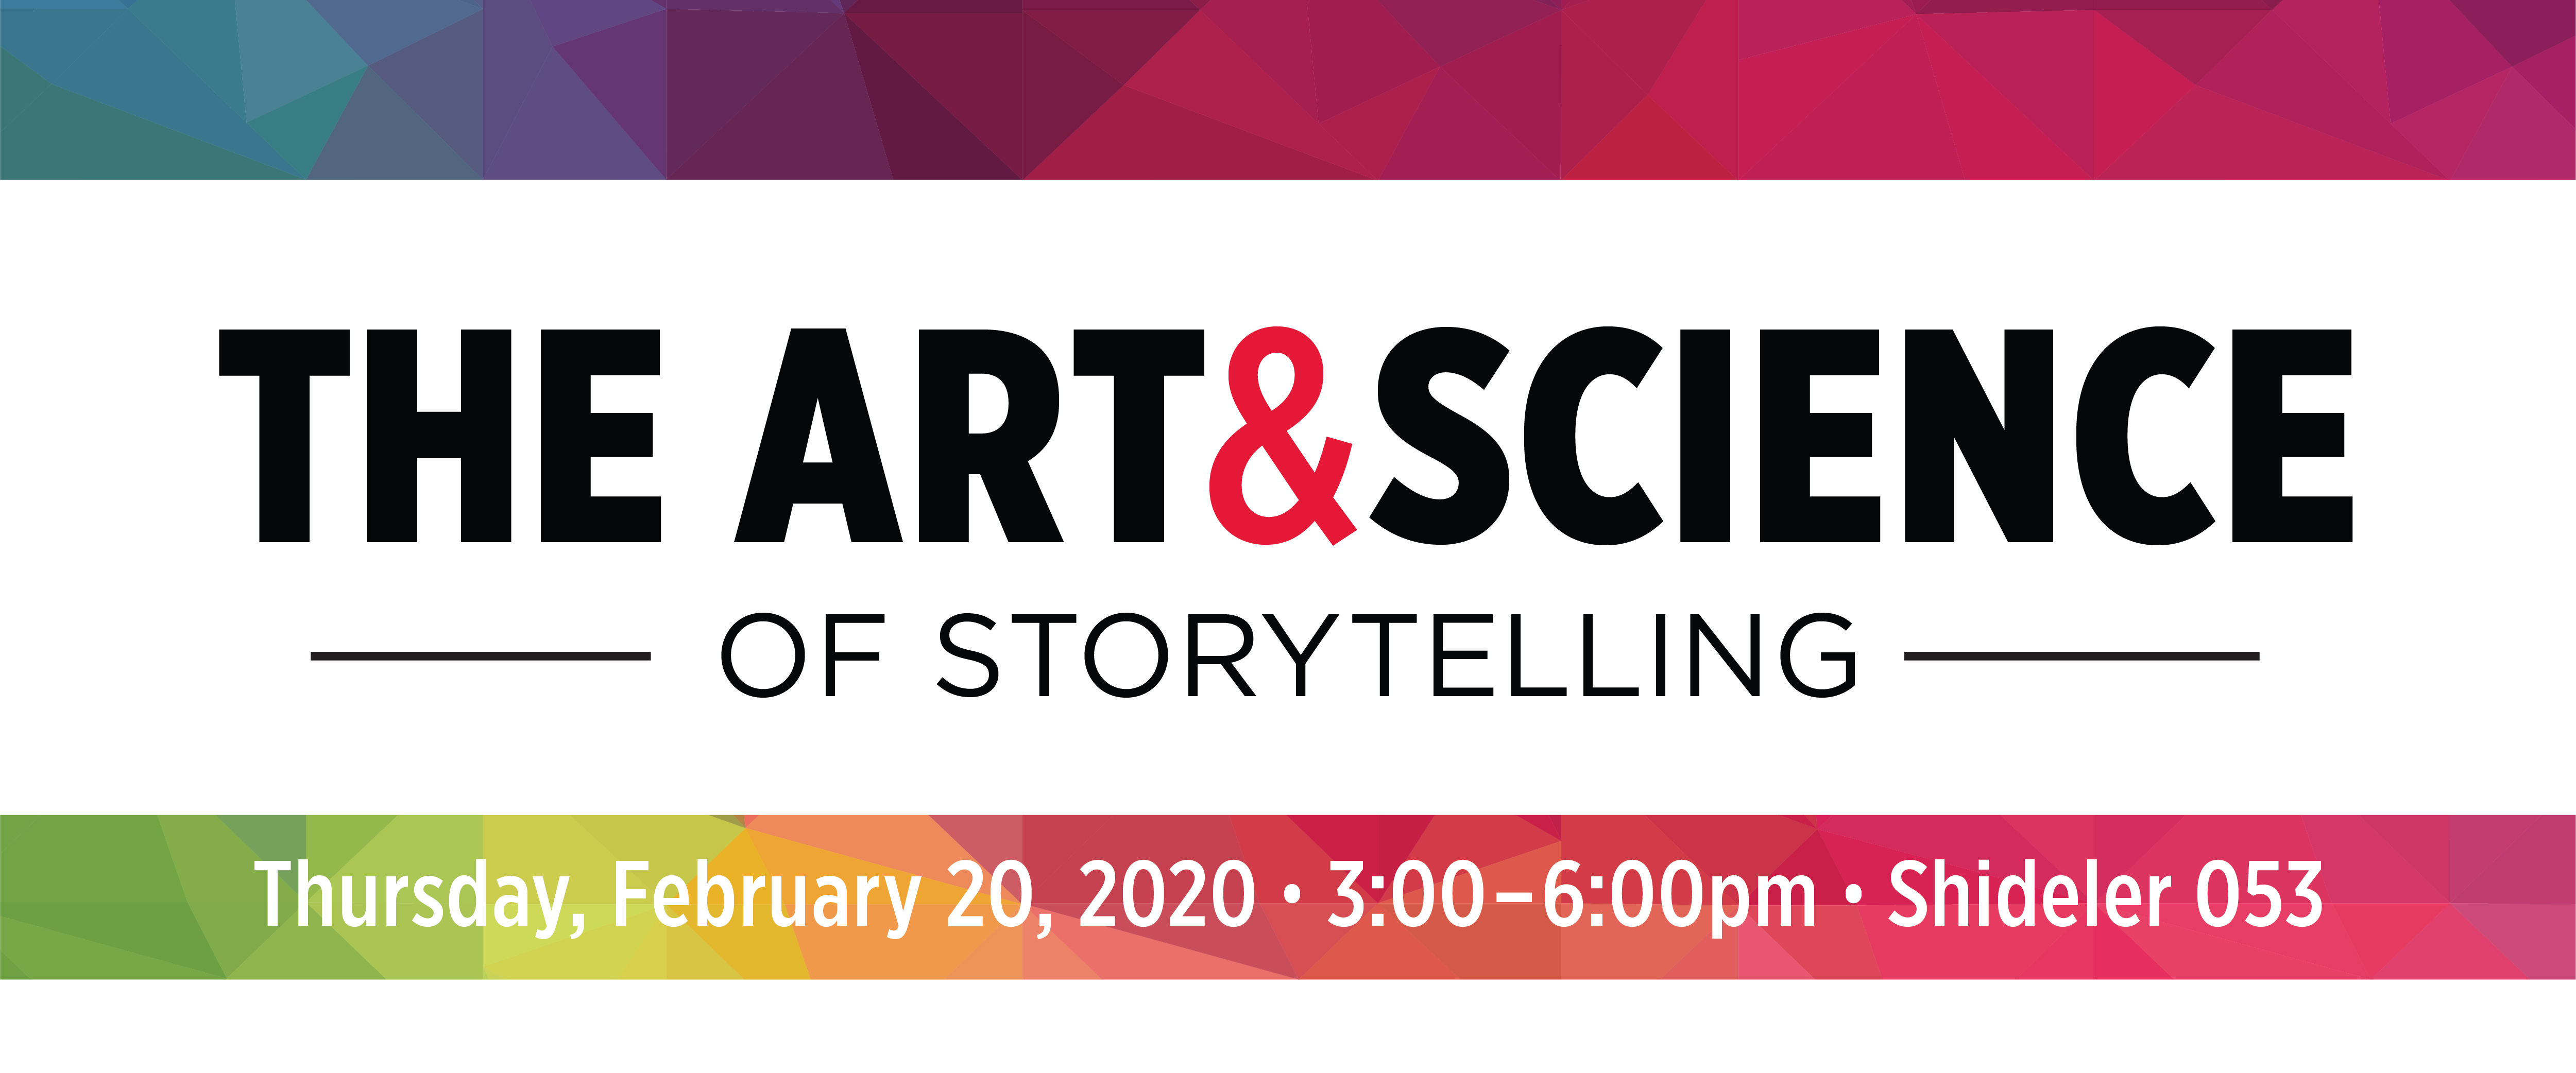 The Art & Science of Storytelling. Thursday, February 20, 2020 from 3 to 6pm in Shideler 053